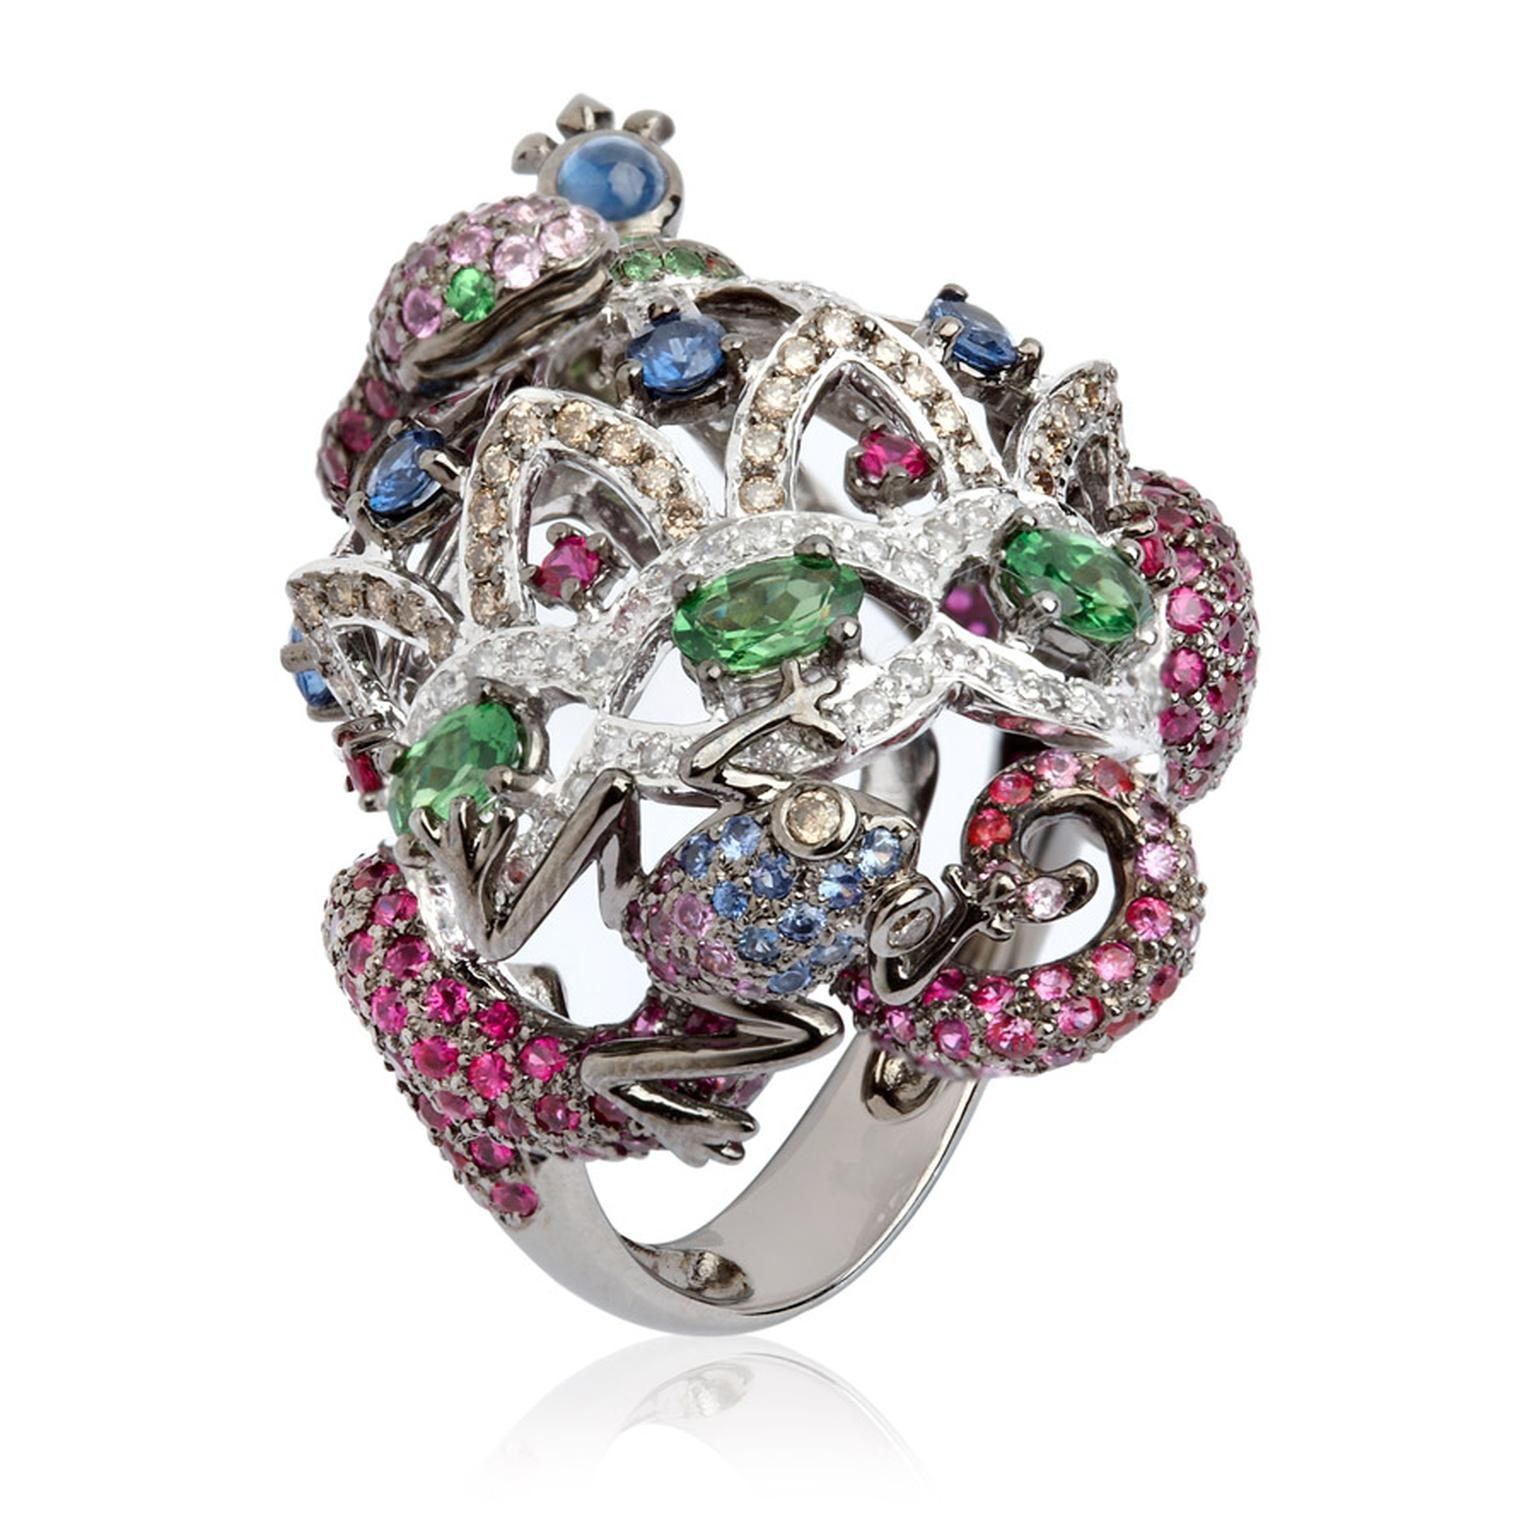 Wendy-Yue-Fantasie--Jubilee-18ct-white-gold,-diamond,-sapphire,-ruby-and-garnet-Serpent-ring-by-Wendy-Yue-for-Annoushka_03.jpg